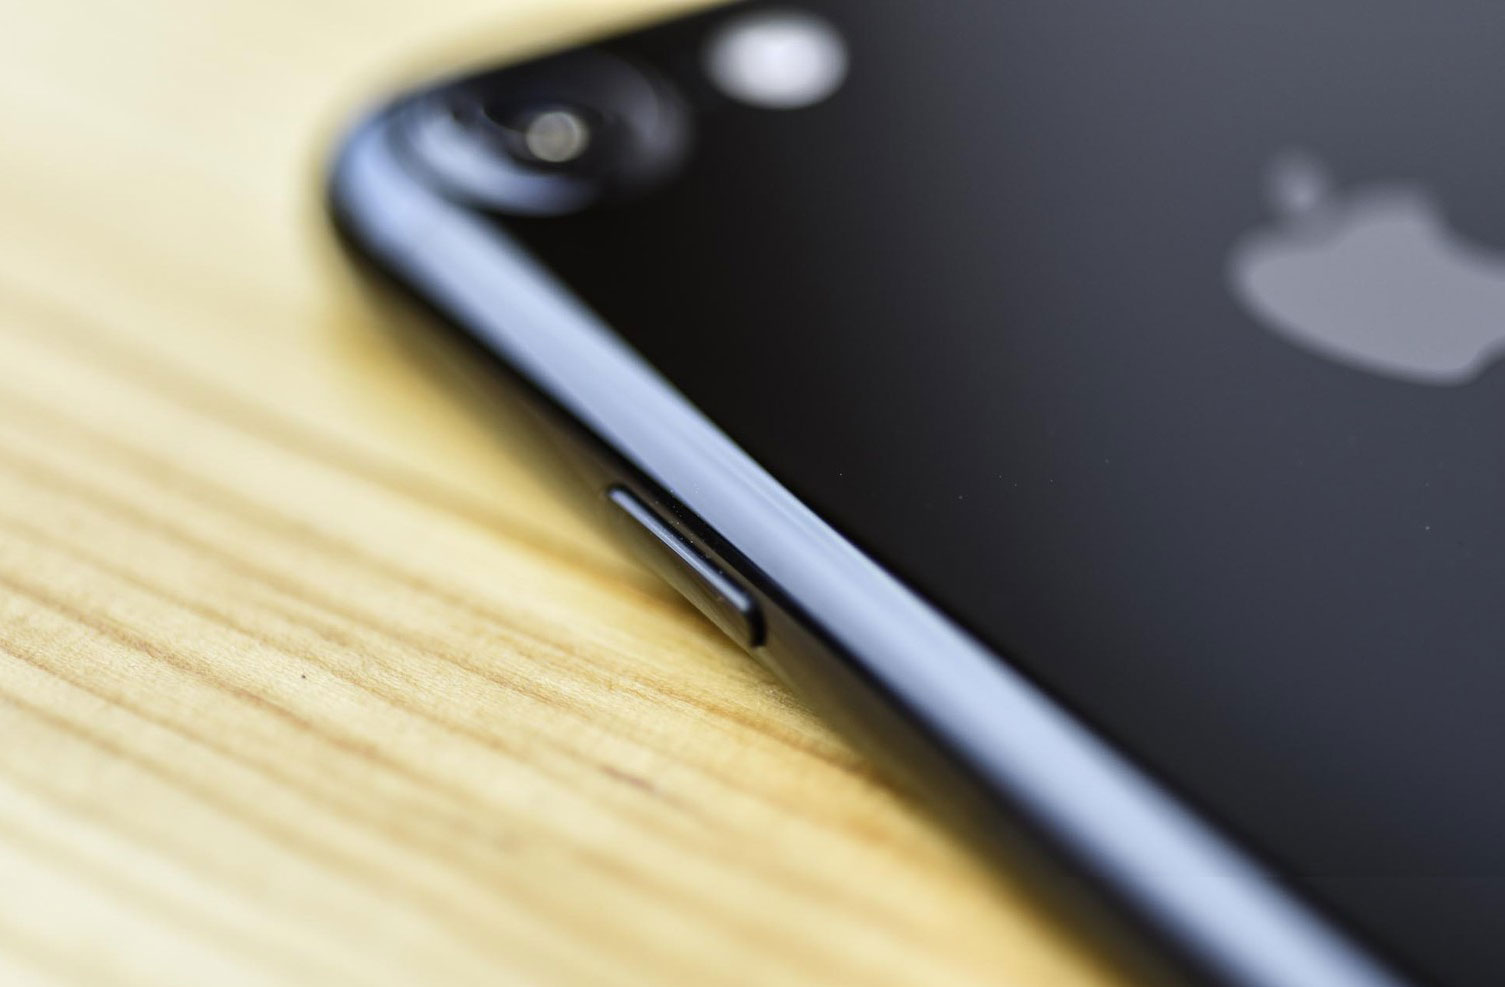 iPhone 7 lost LG G5 in the ranking of the best smartphones of the year according to iFixit